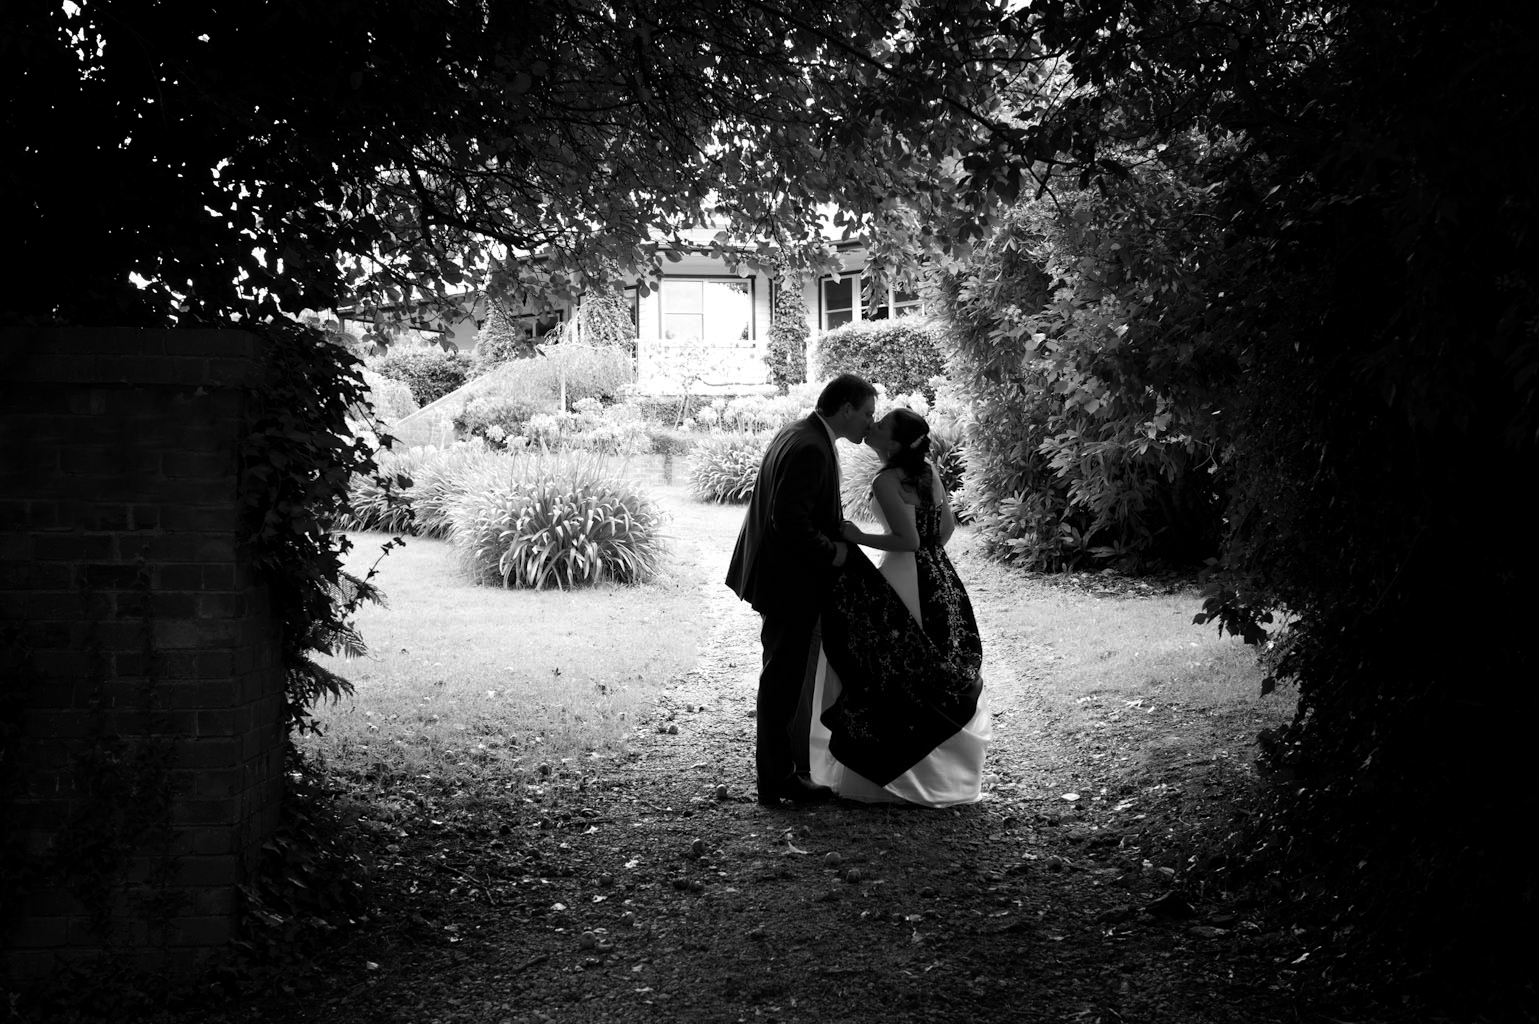 Balck and white wedding photo of a couple in silhouette at forest edge gembrook